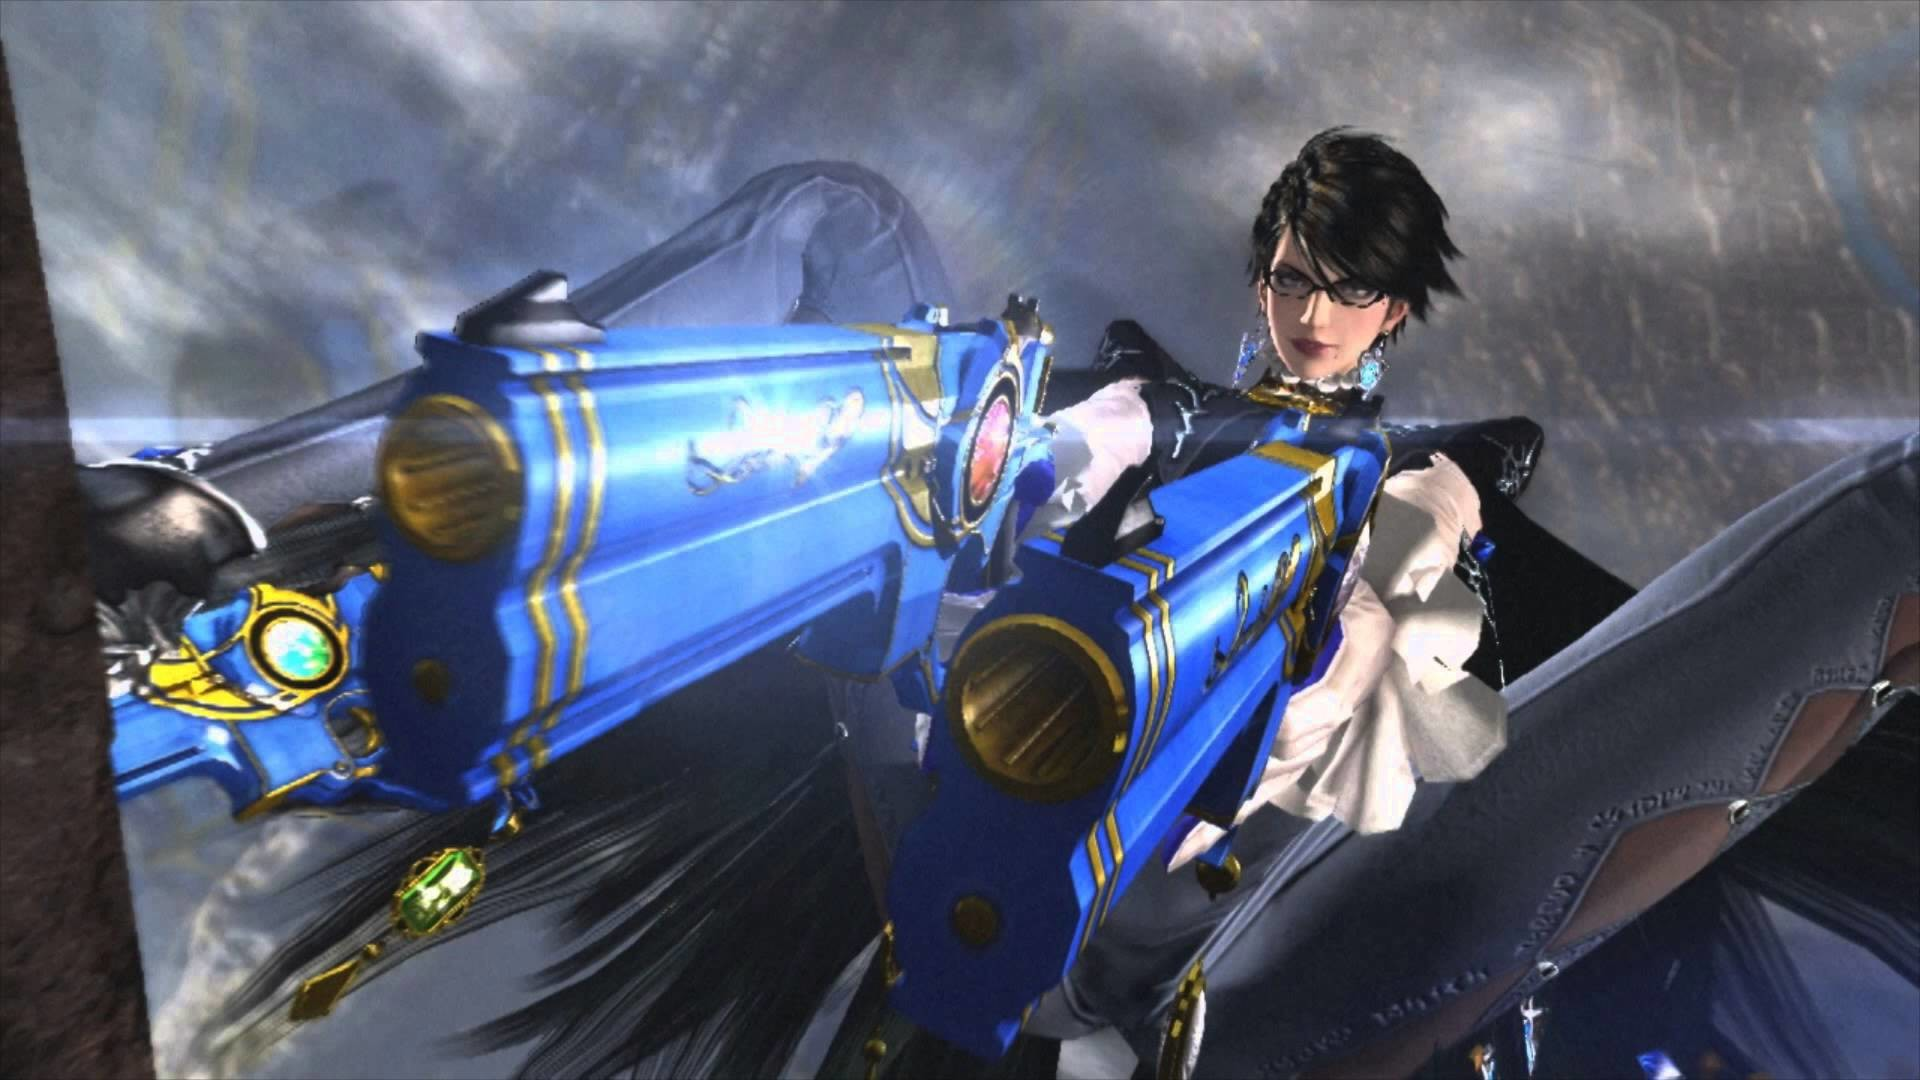 1920x1080 Bayonetta, Fire Emblem's Corrin and more coming to Super Smash Bros.